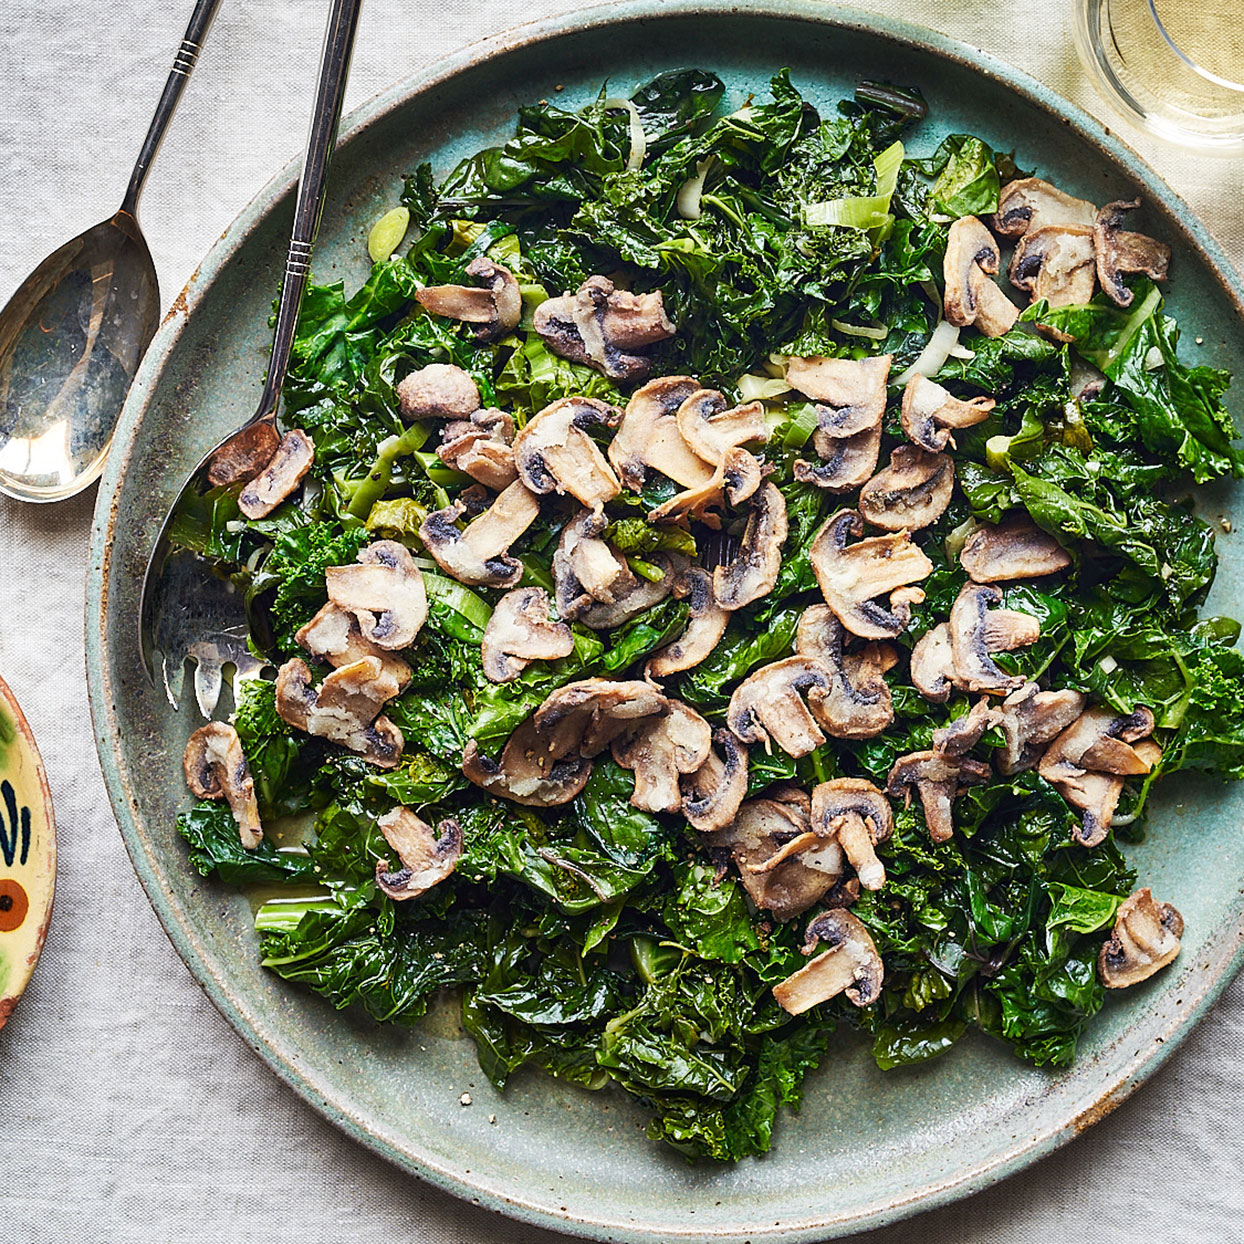 Braised Winter Greens with Crispy Mushrooms